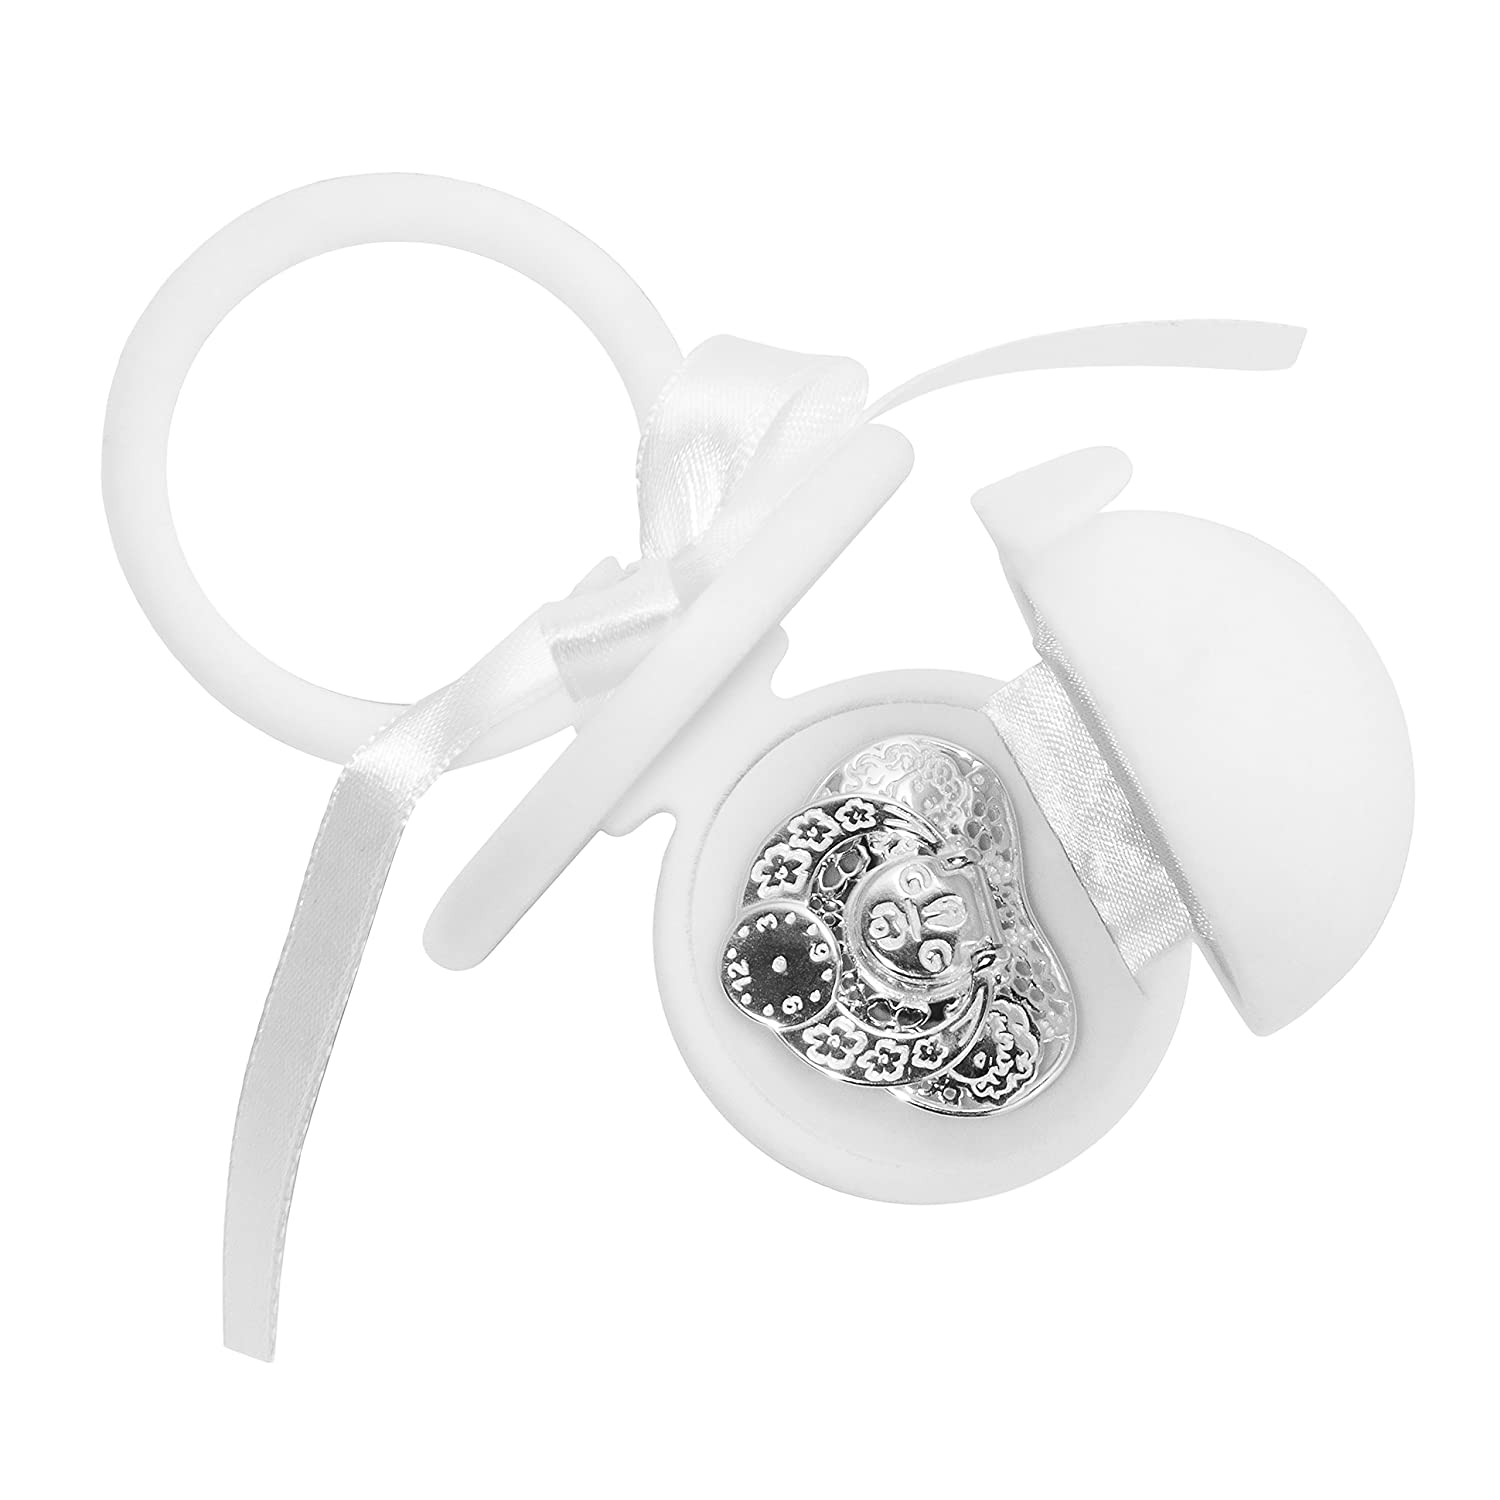 0f36069e468e9 Silver Keepsake Pacifier - Real 925 Sterling Silver Baby Gift - First Tooth  Keepsake for Newborn Boys and Girls